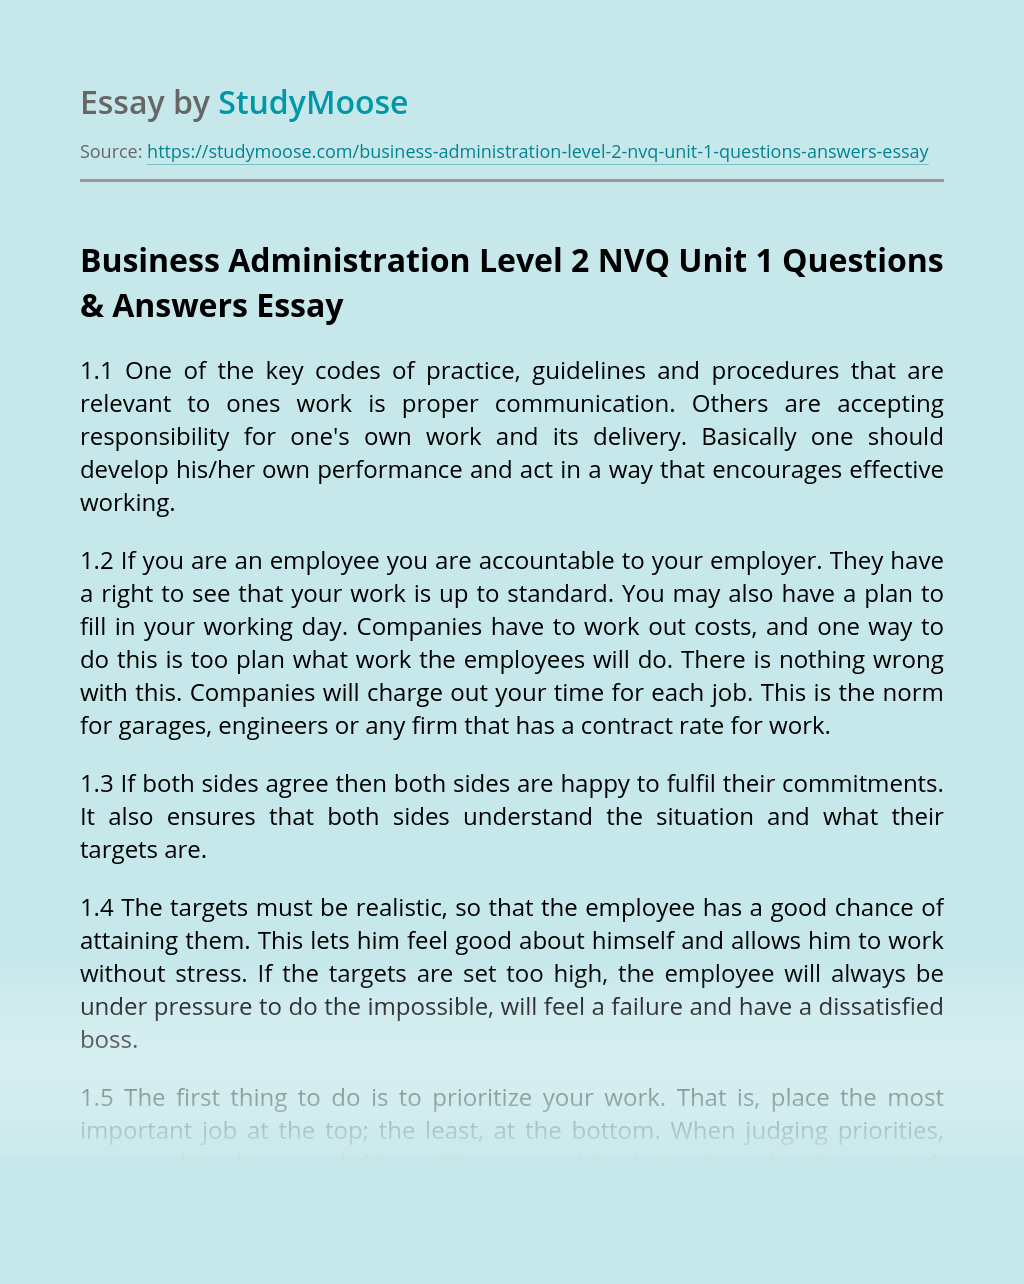 Business Administration Level 2 NVQ Unit 1 Questions & Answers